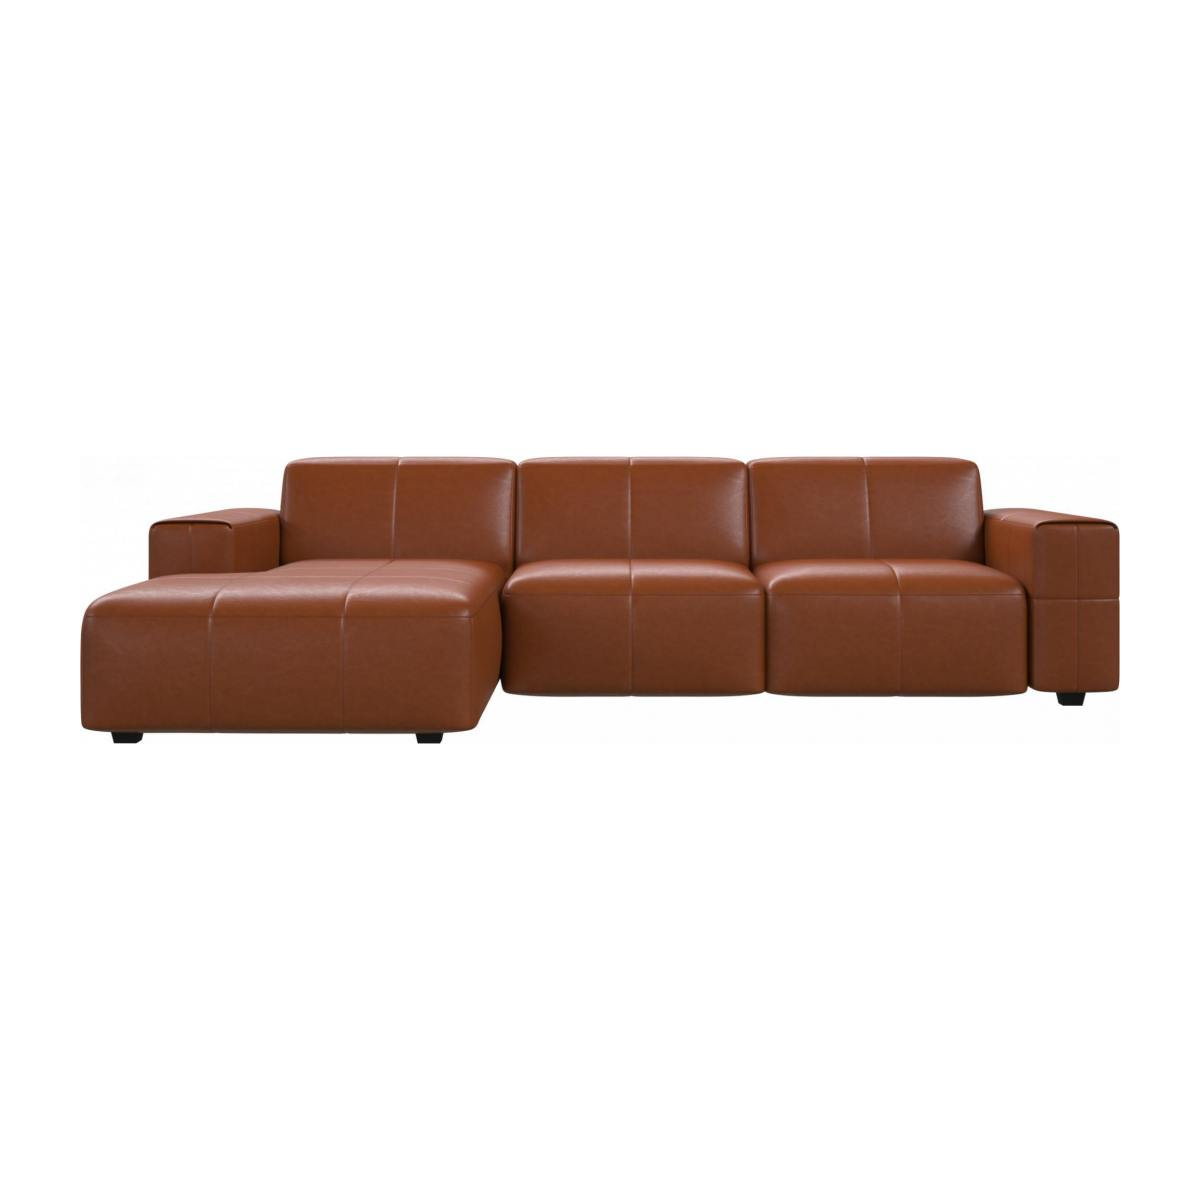 3 seater sofa with chaise longue on the left in Vintage aniline leather, old chestnut n°1